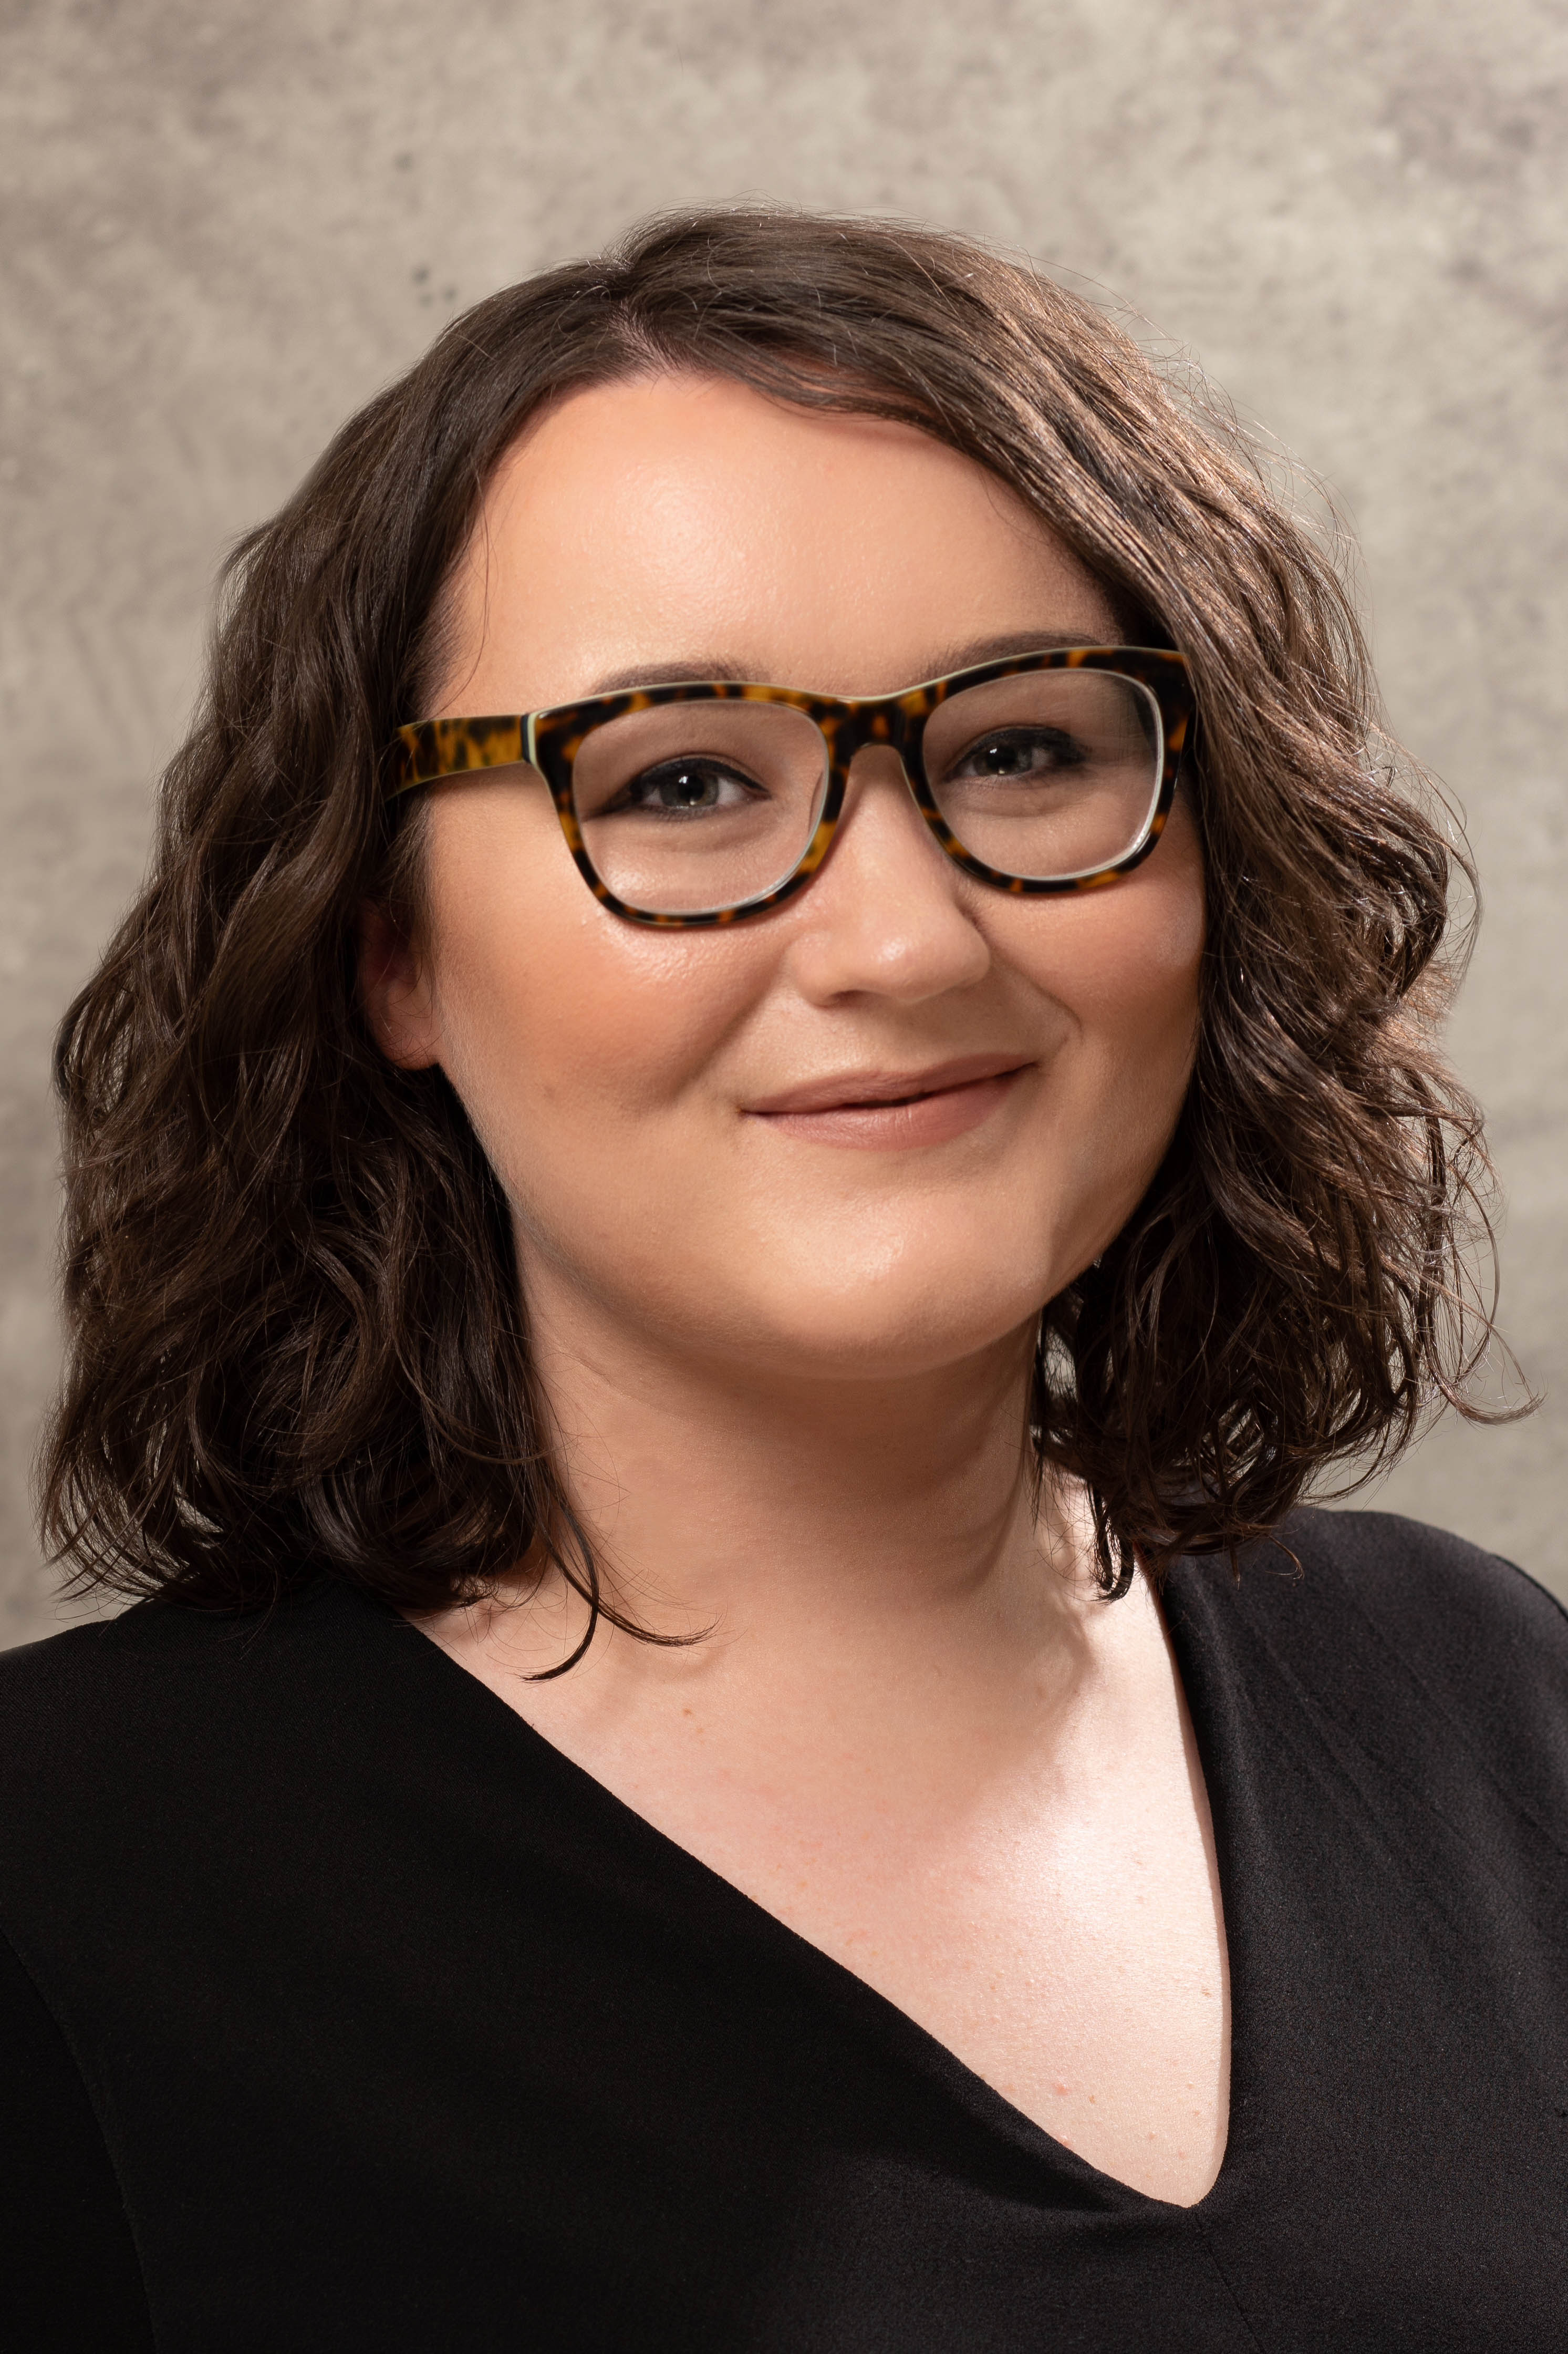 Female with glasses - corporate headshot